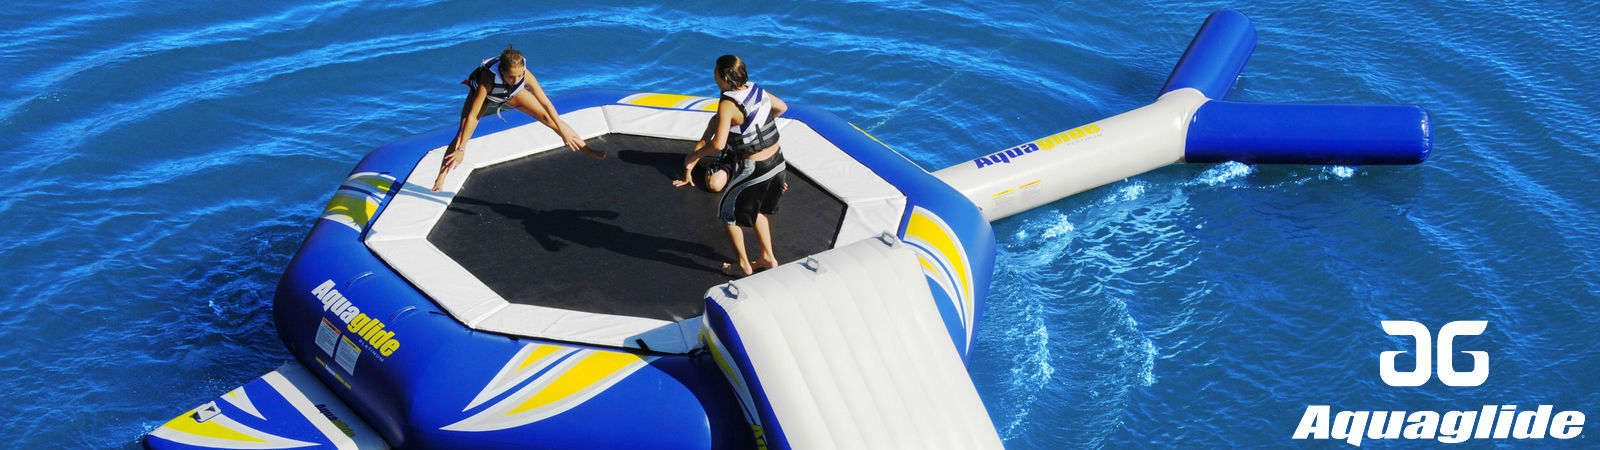 Aquaglide Inflatable Water Trampoline available at Sportique.com